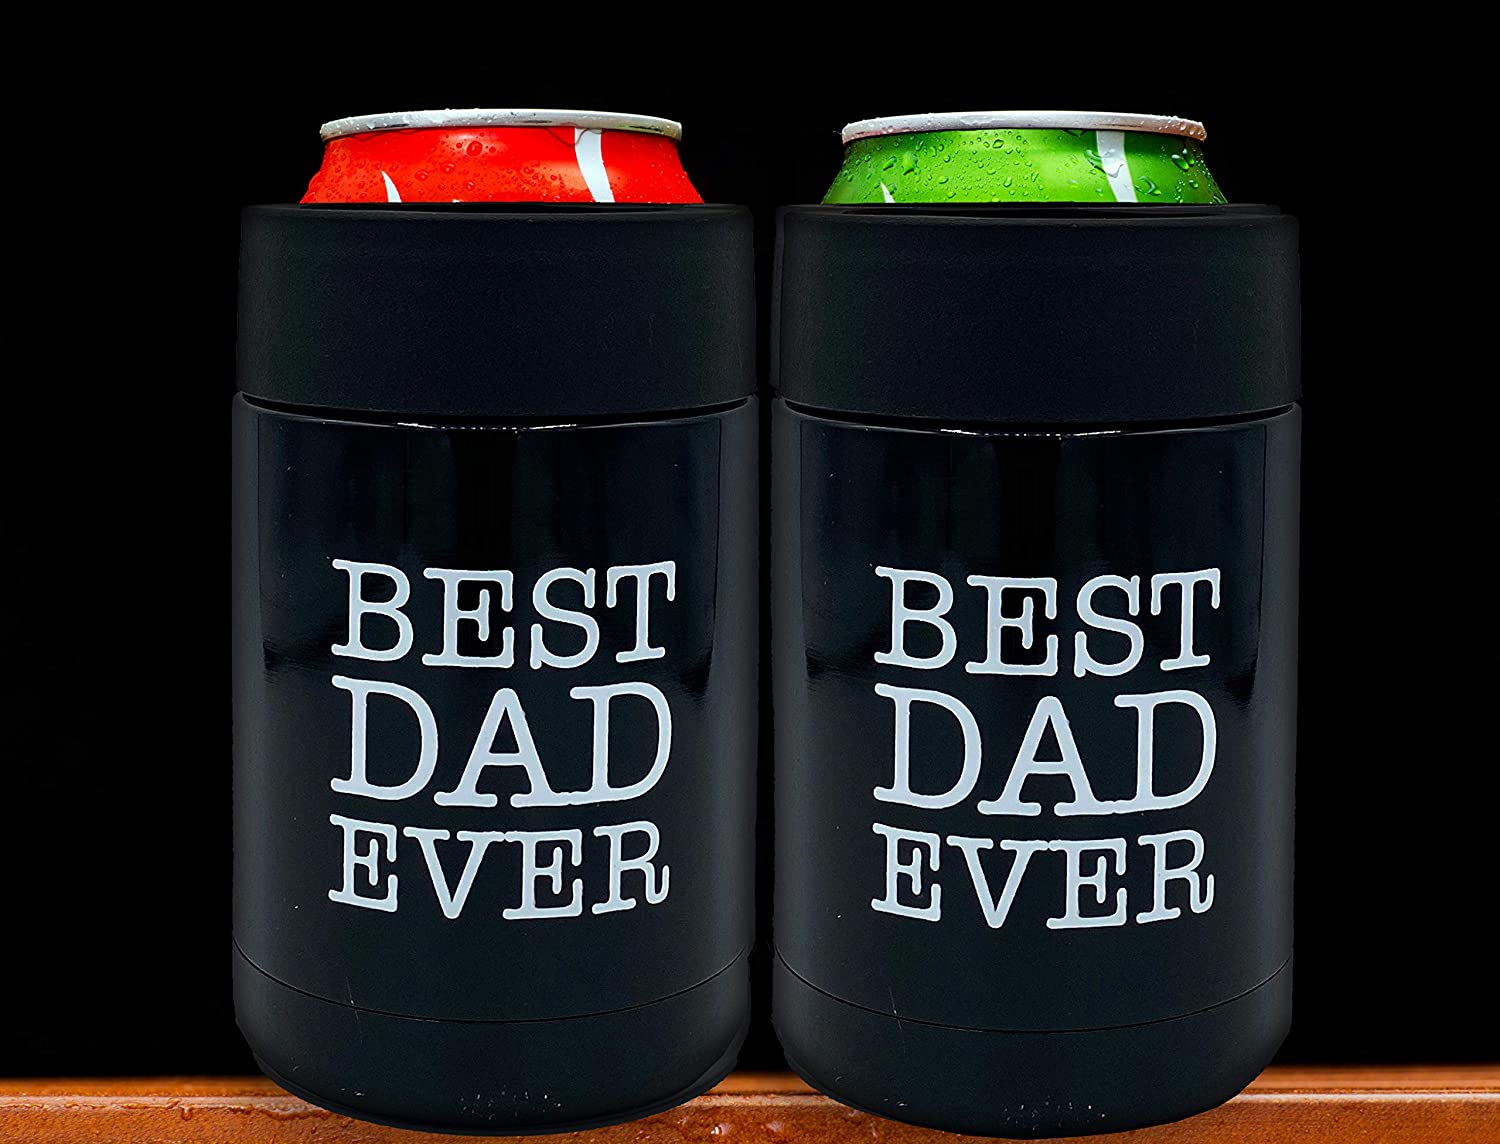 Stainless Steel Drink Thermos Holder Fathers Day Coozy Gift Cozy ...